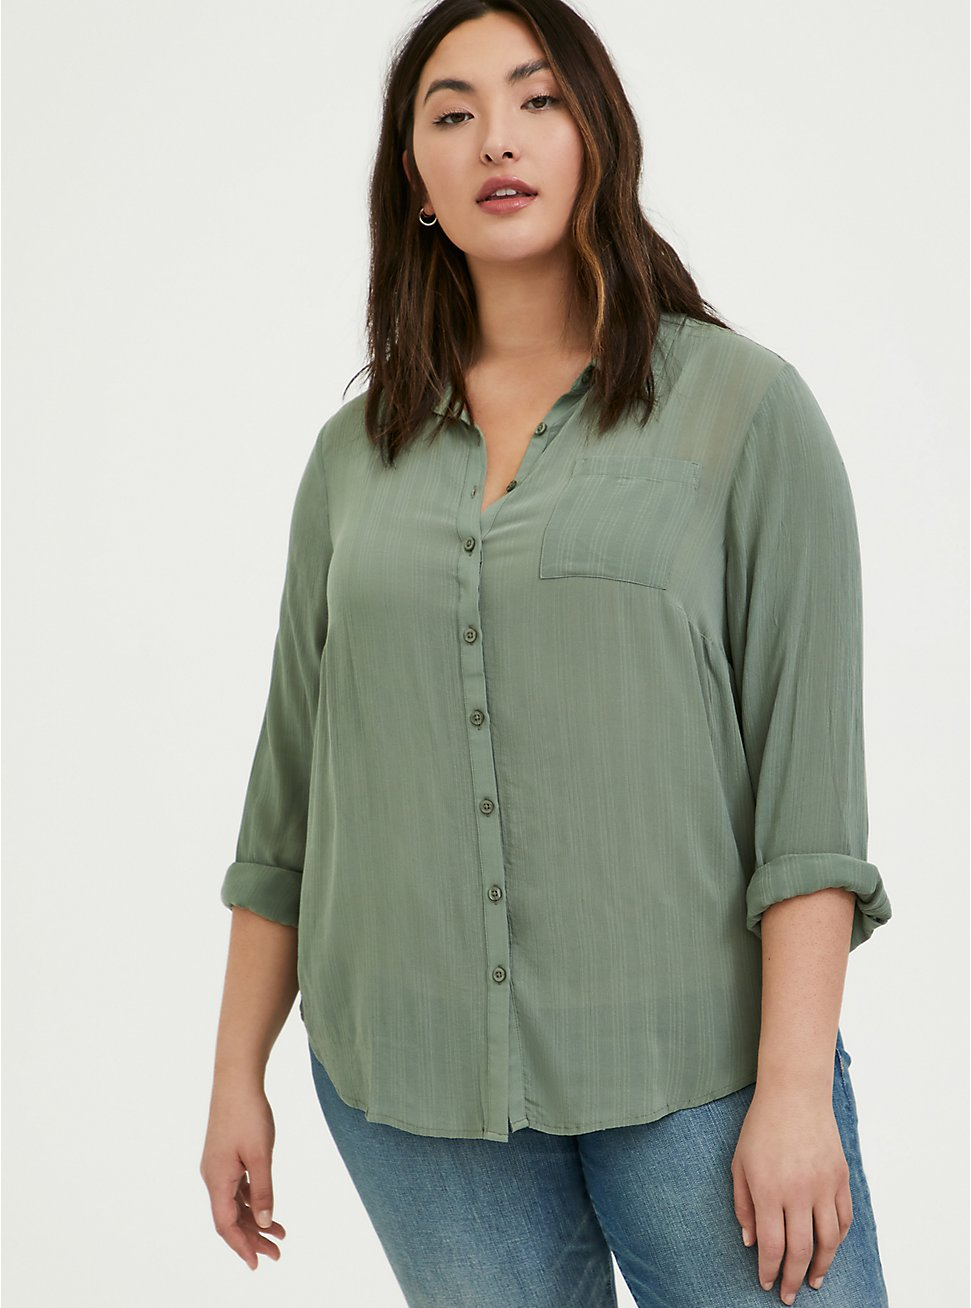 Plus Size Madison - Light Olive Green Crinkled Gauze Button Front Blouse, AGAVE GREEN, hi-res